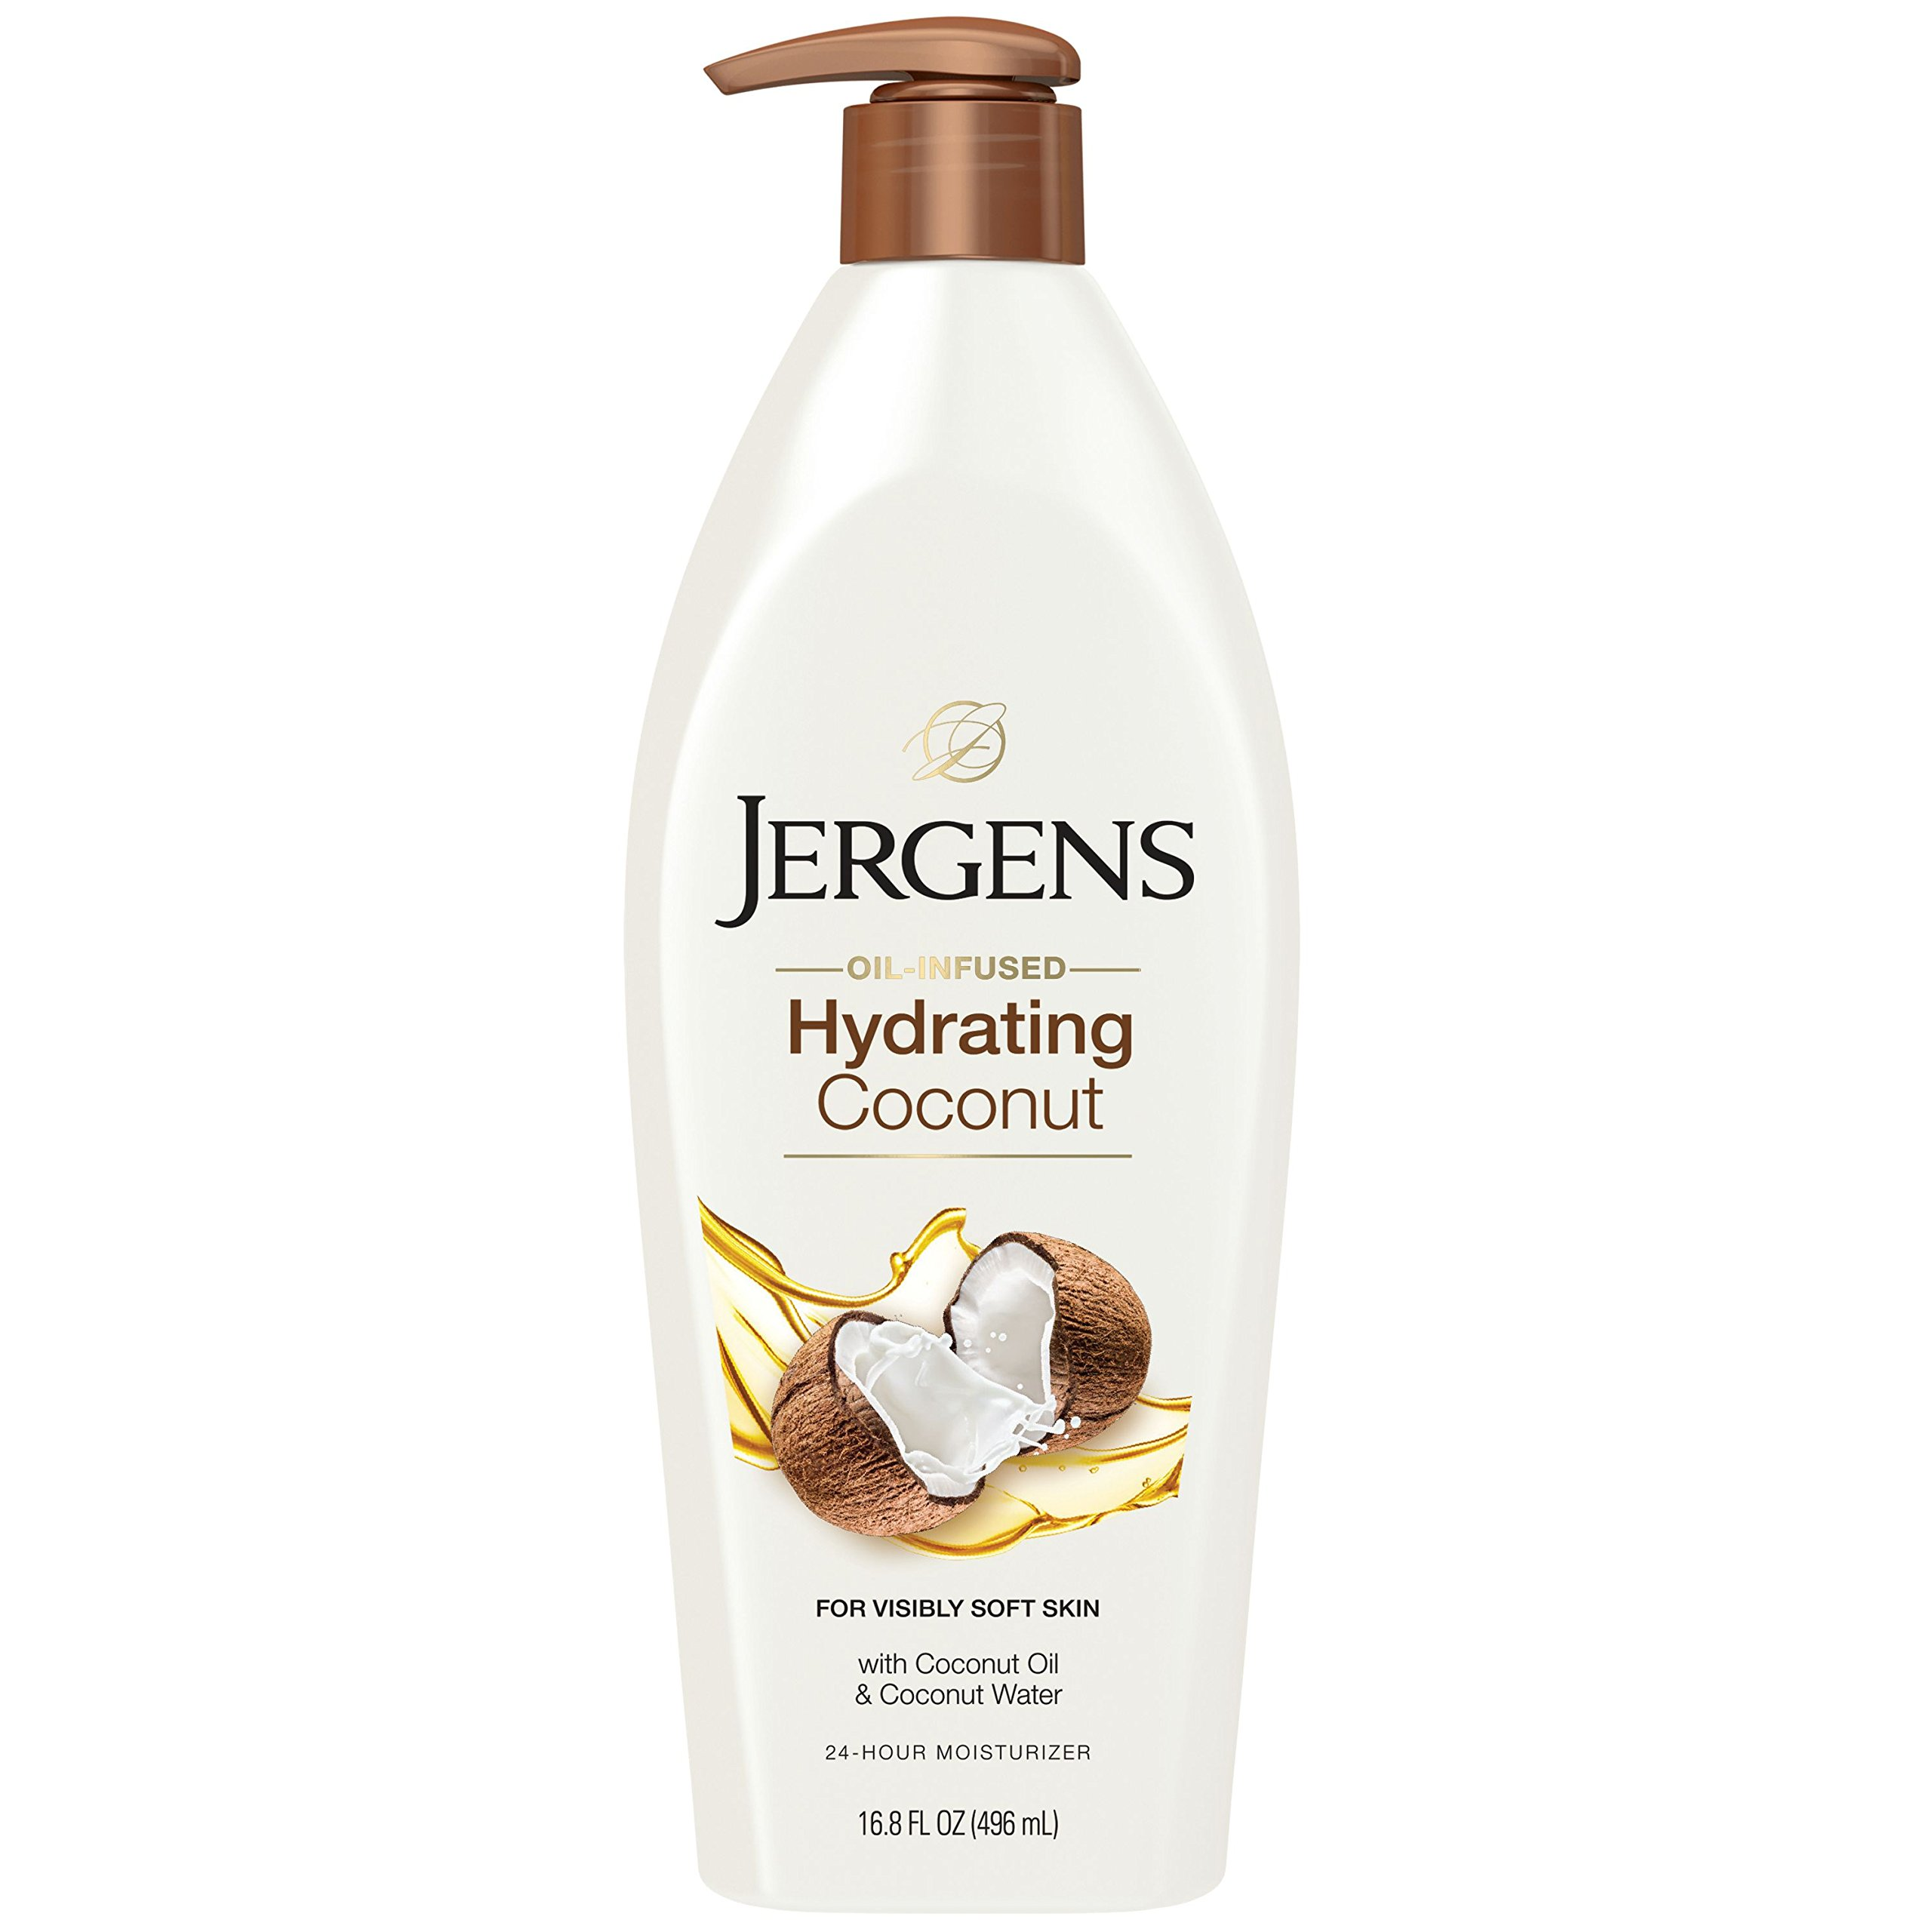 Jergens Shea Butter Deep Conditioning Moisturizer 265 Twin Pack Vaseline Hw Perfect 10 Pj 400ml Hydrating Coconut Dry Skin Body 168 Ounces Packaging May Vary